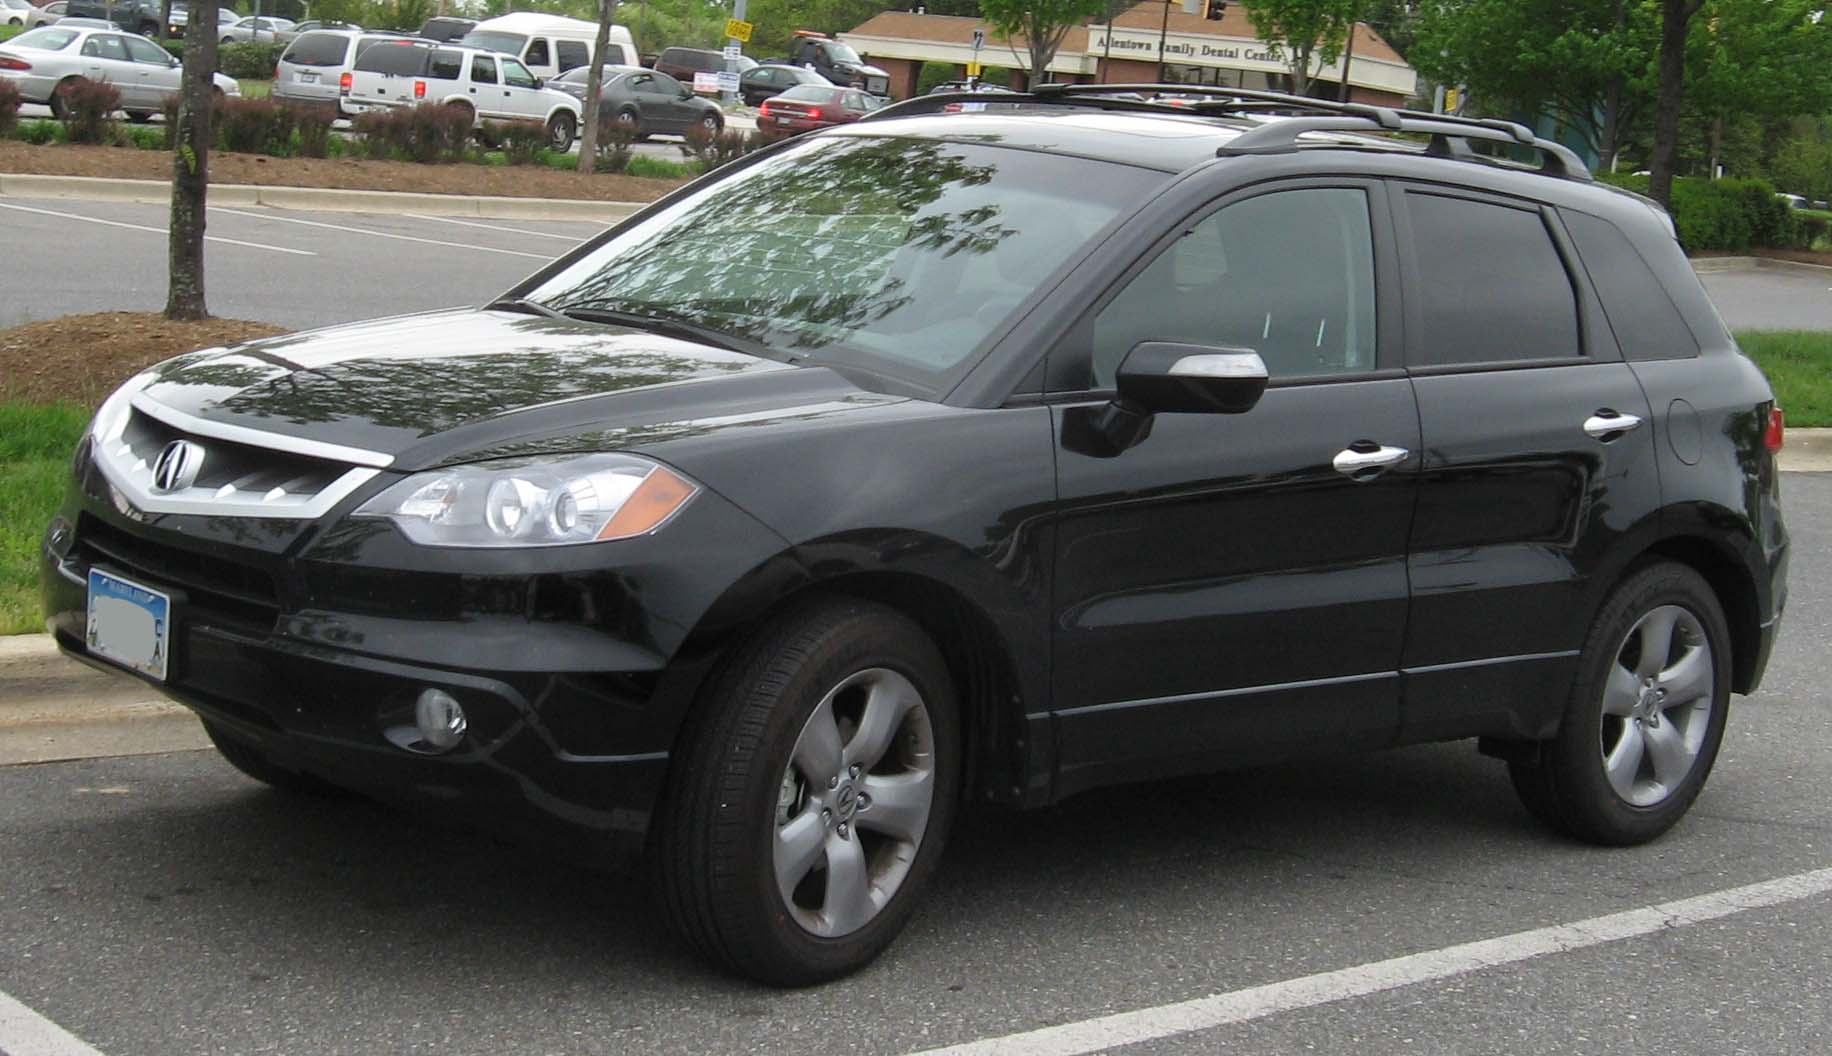 File:2007-Acura-RDX-1.jpg - Wikimedia Commons